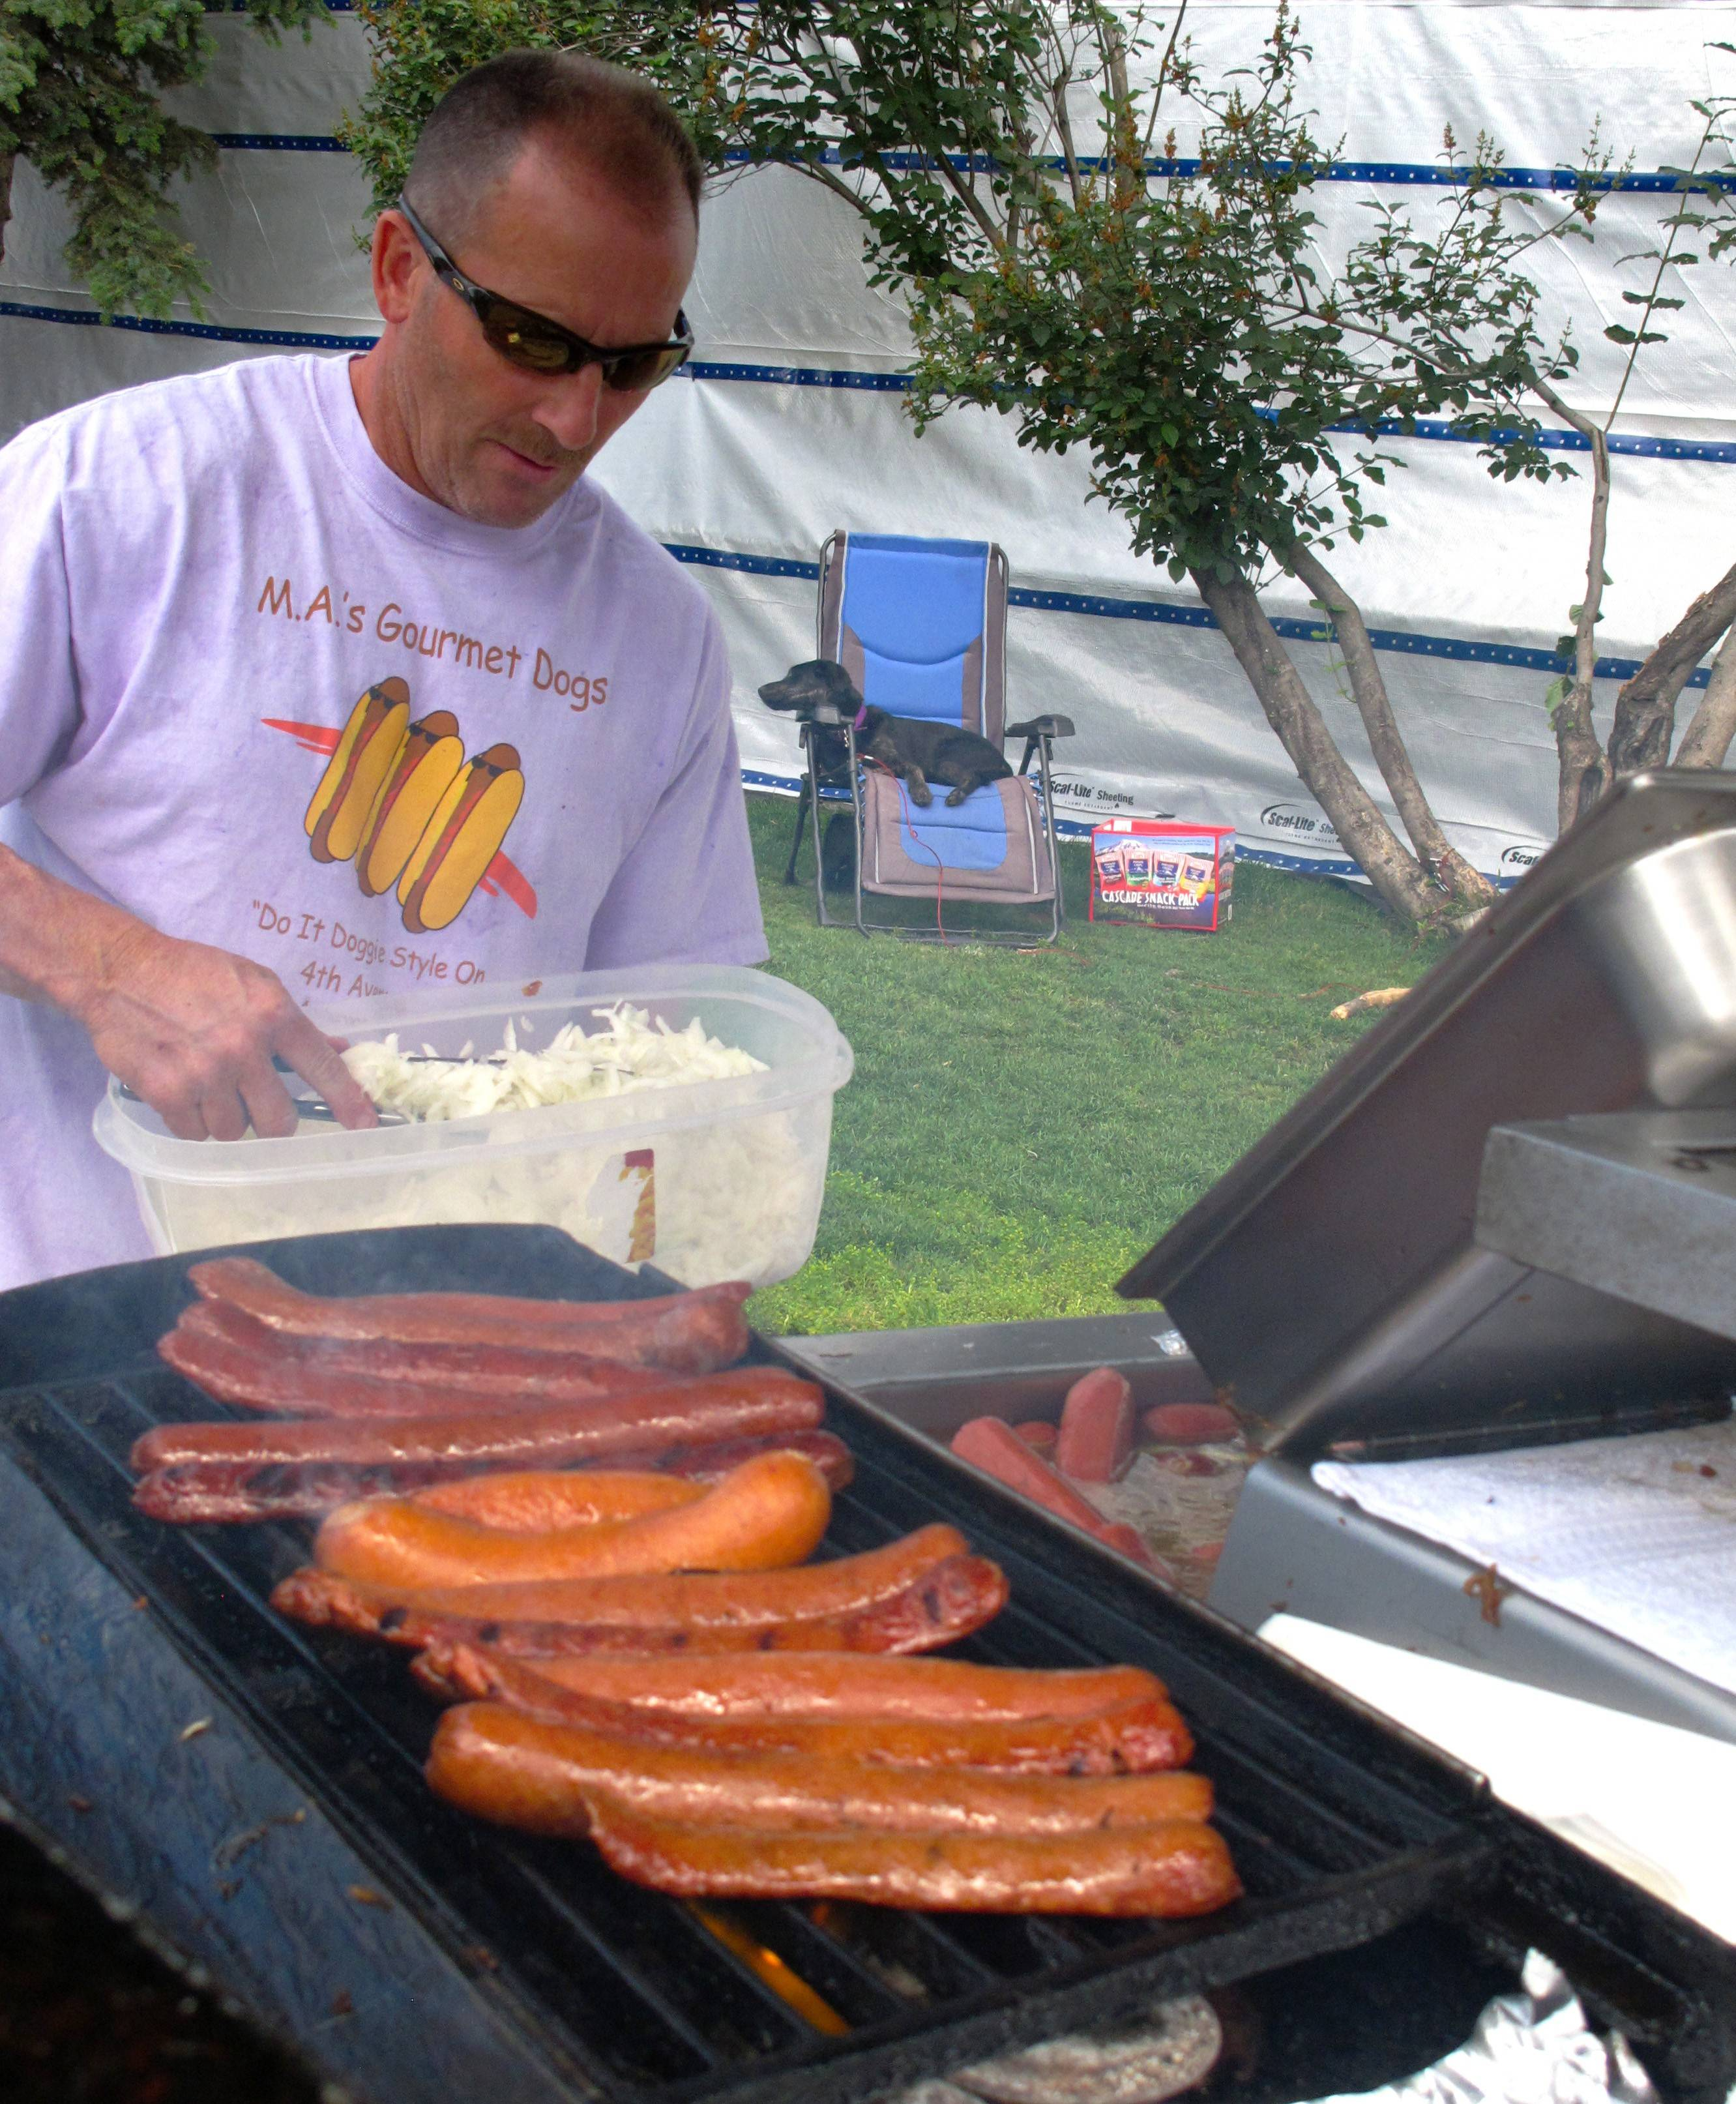 Michael Anderson operates his popular hot dog stand, where spicy reindeer dogs are the hands-down crowd favorite in downtown Anchorage, Alaska.